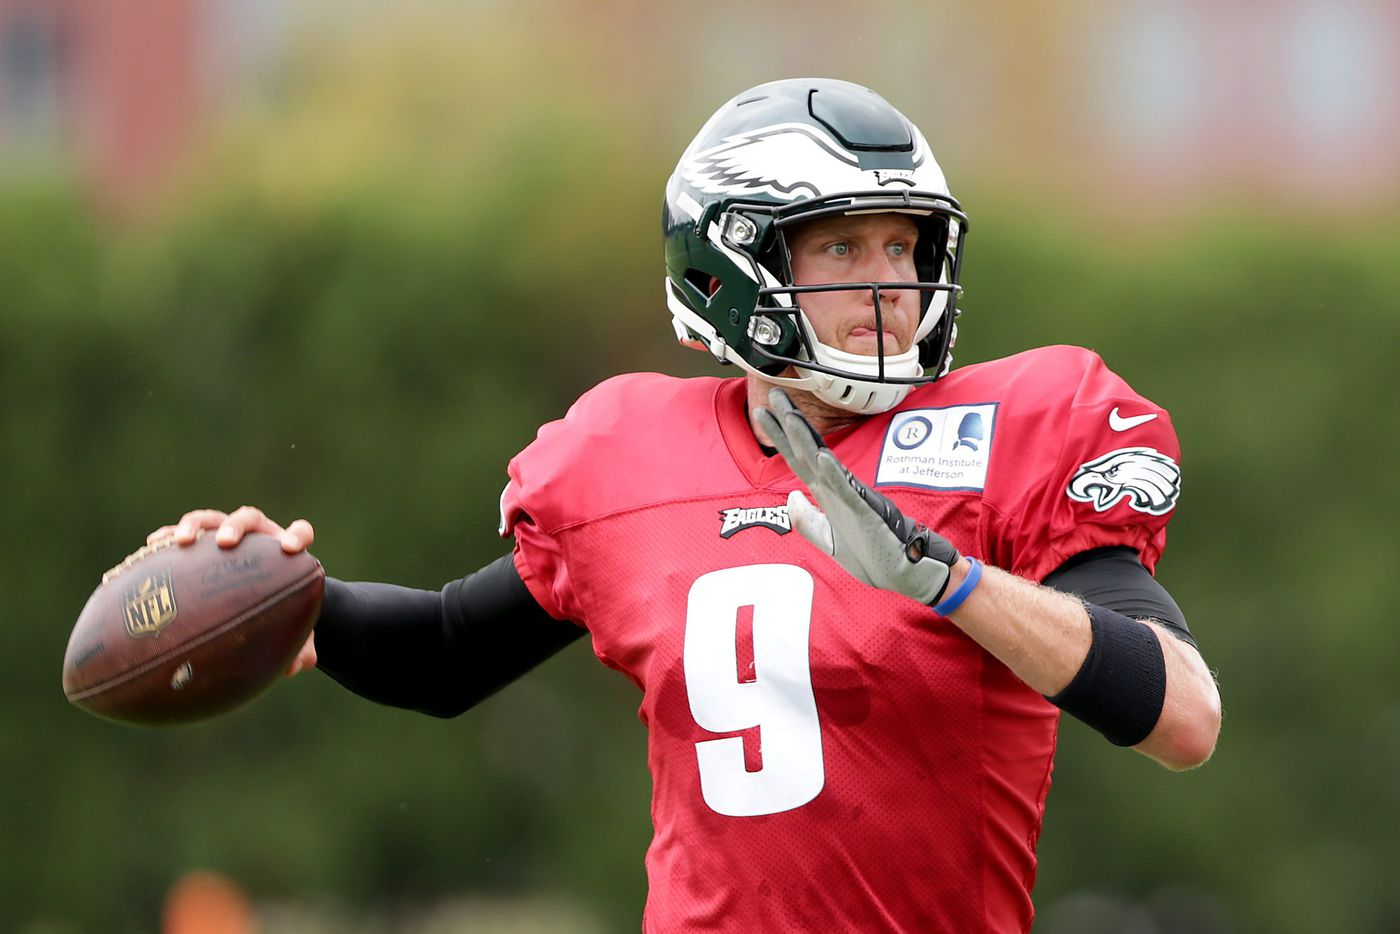 With Carson Wentz not cleared to play, Nick Foles is Eagles' starter for Week 2